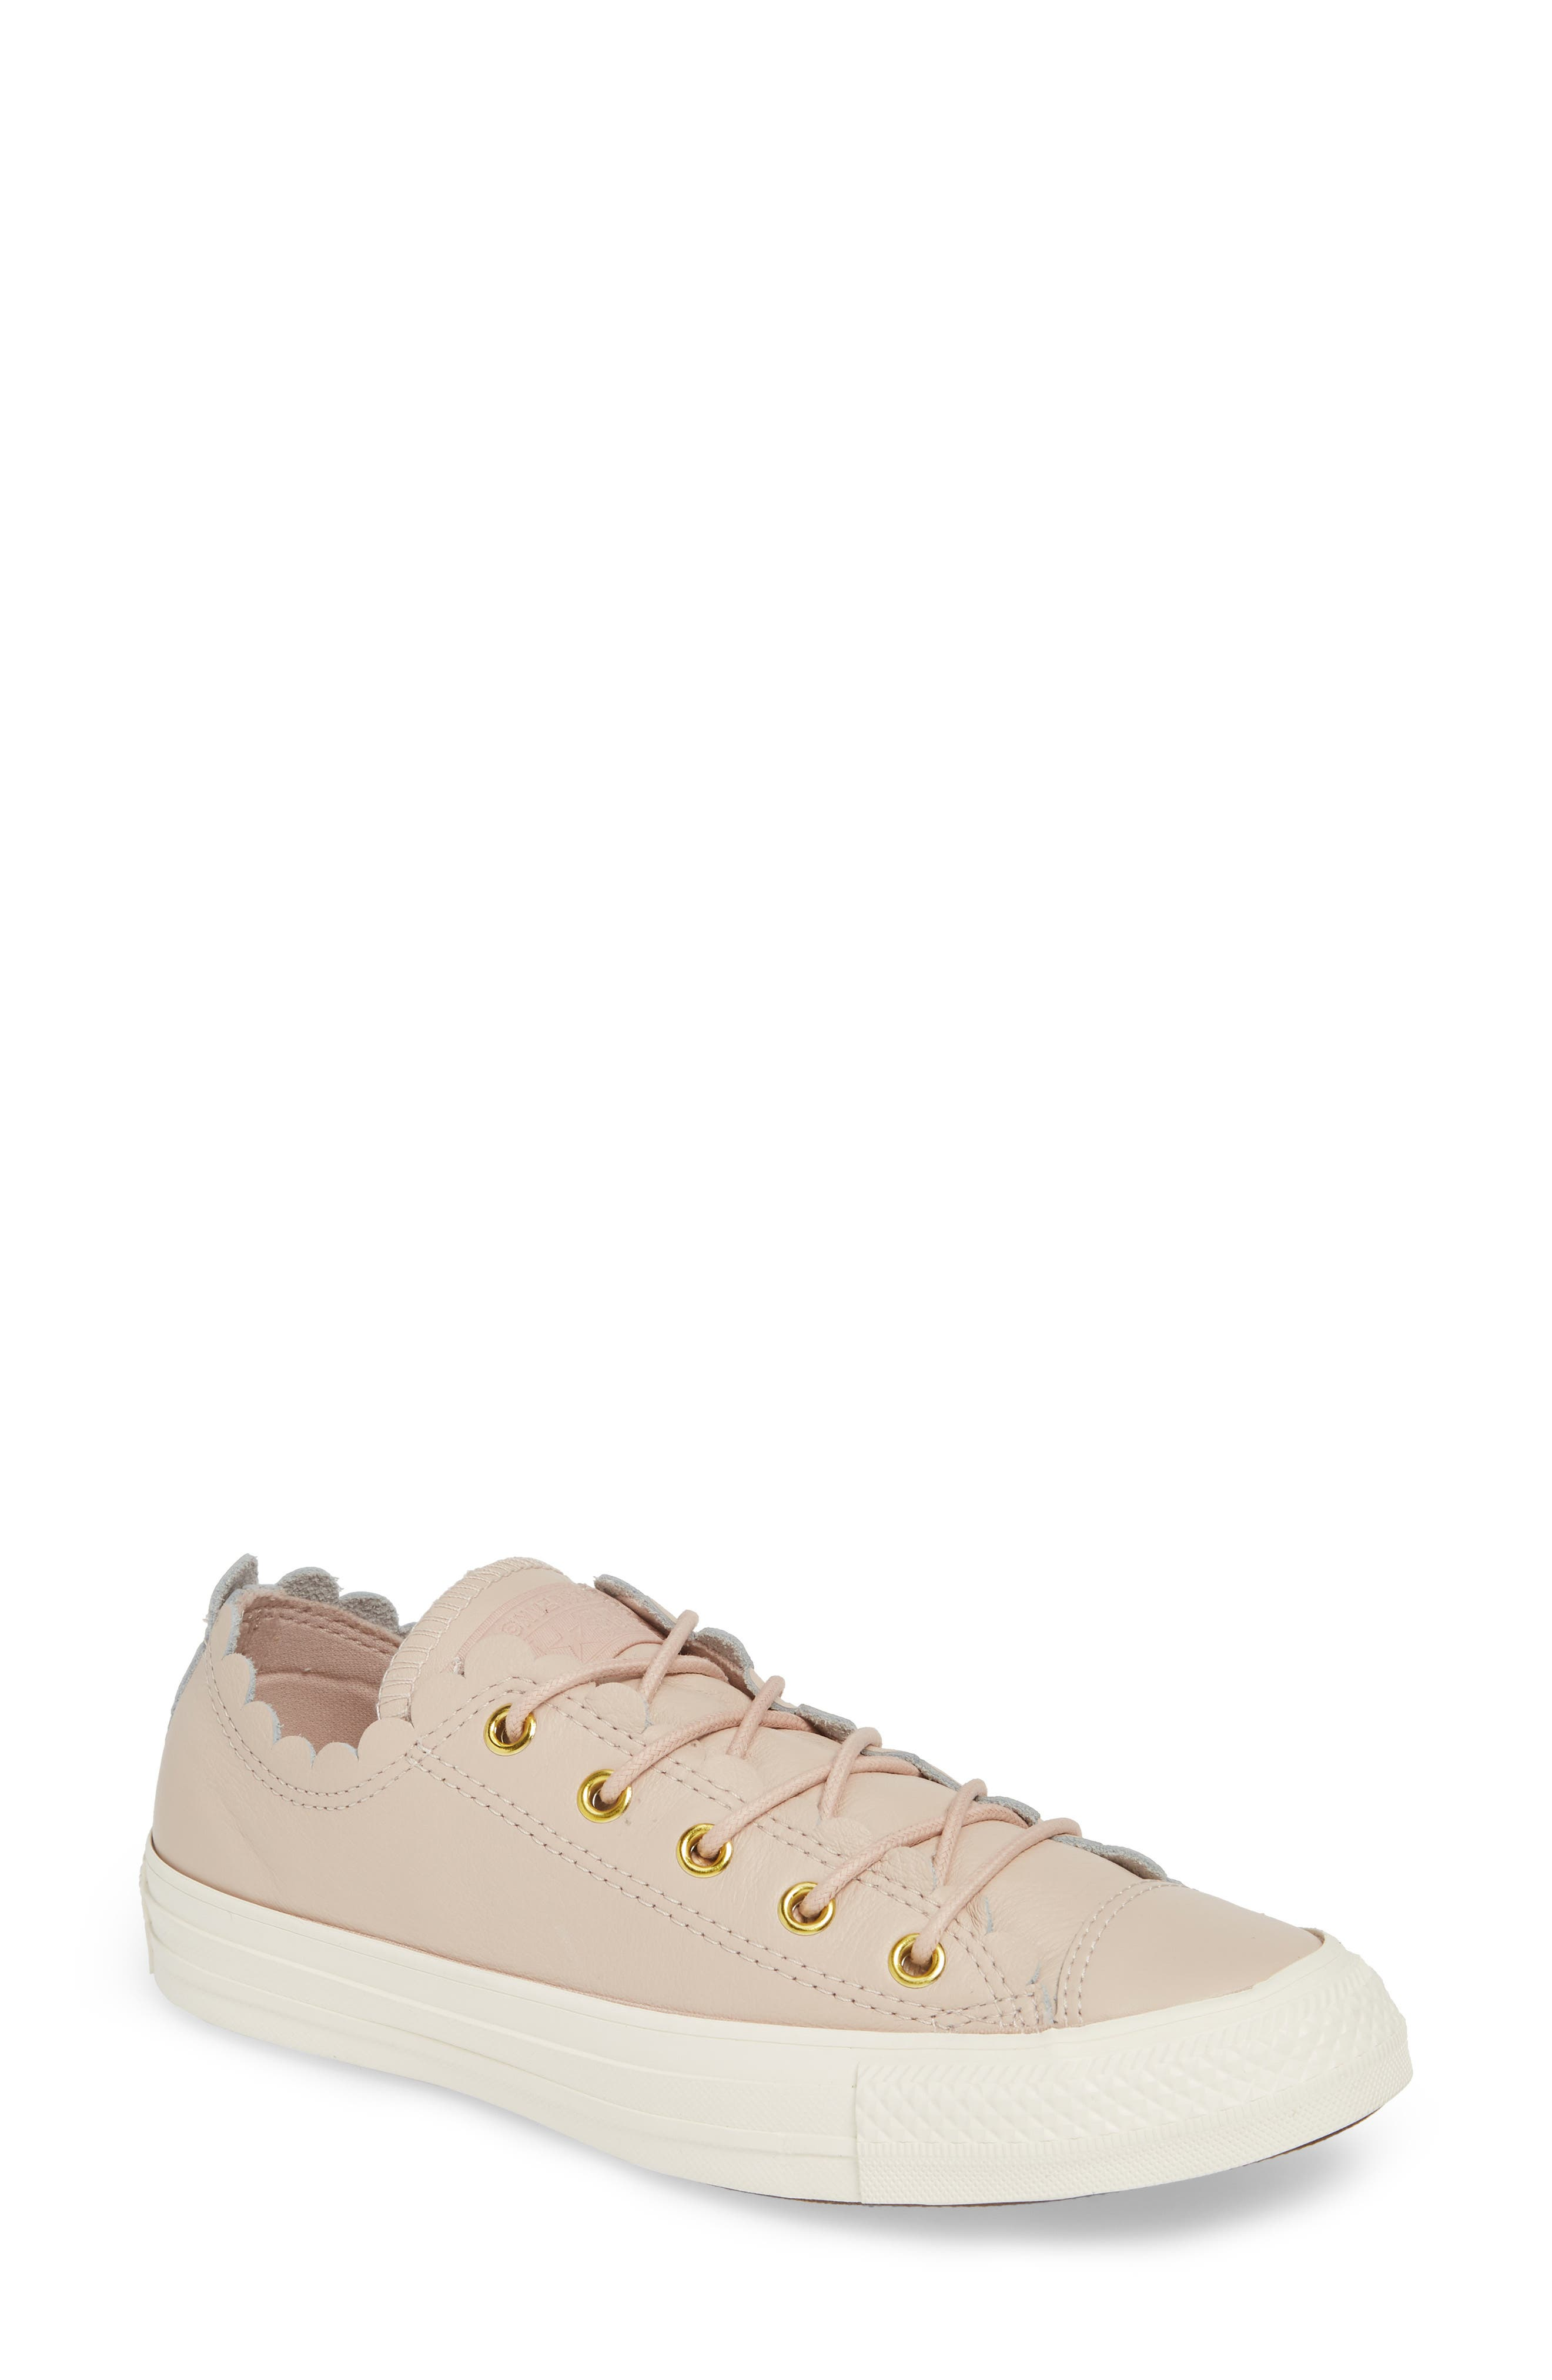 Converse Chuck Taylor All Star Scallop Low Top Leather Sneaker, Pink